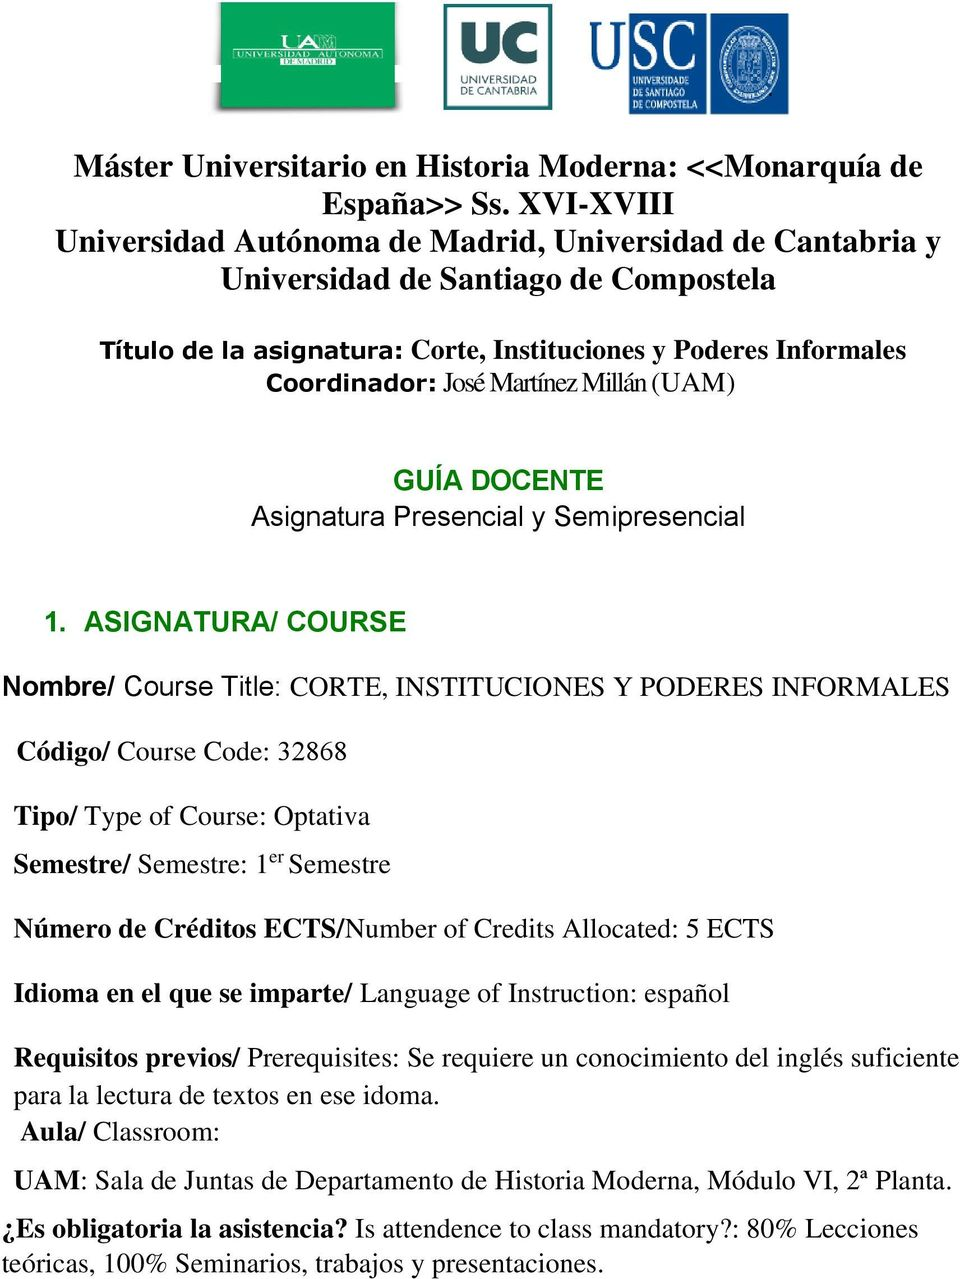 Número de Créditos ECTS/Number of Credits Allocated: 5 ECTS Idioma en el que se imparte/ Language of Instruction: español Requisitos previos/ Prerequisites: Se requiere un